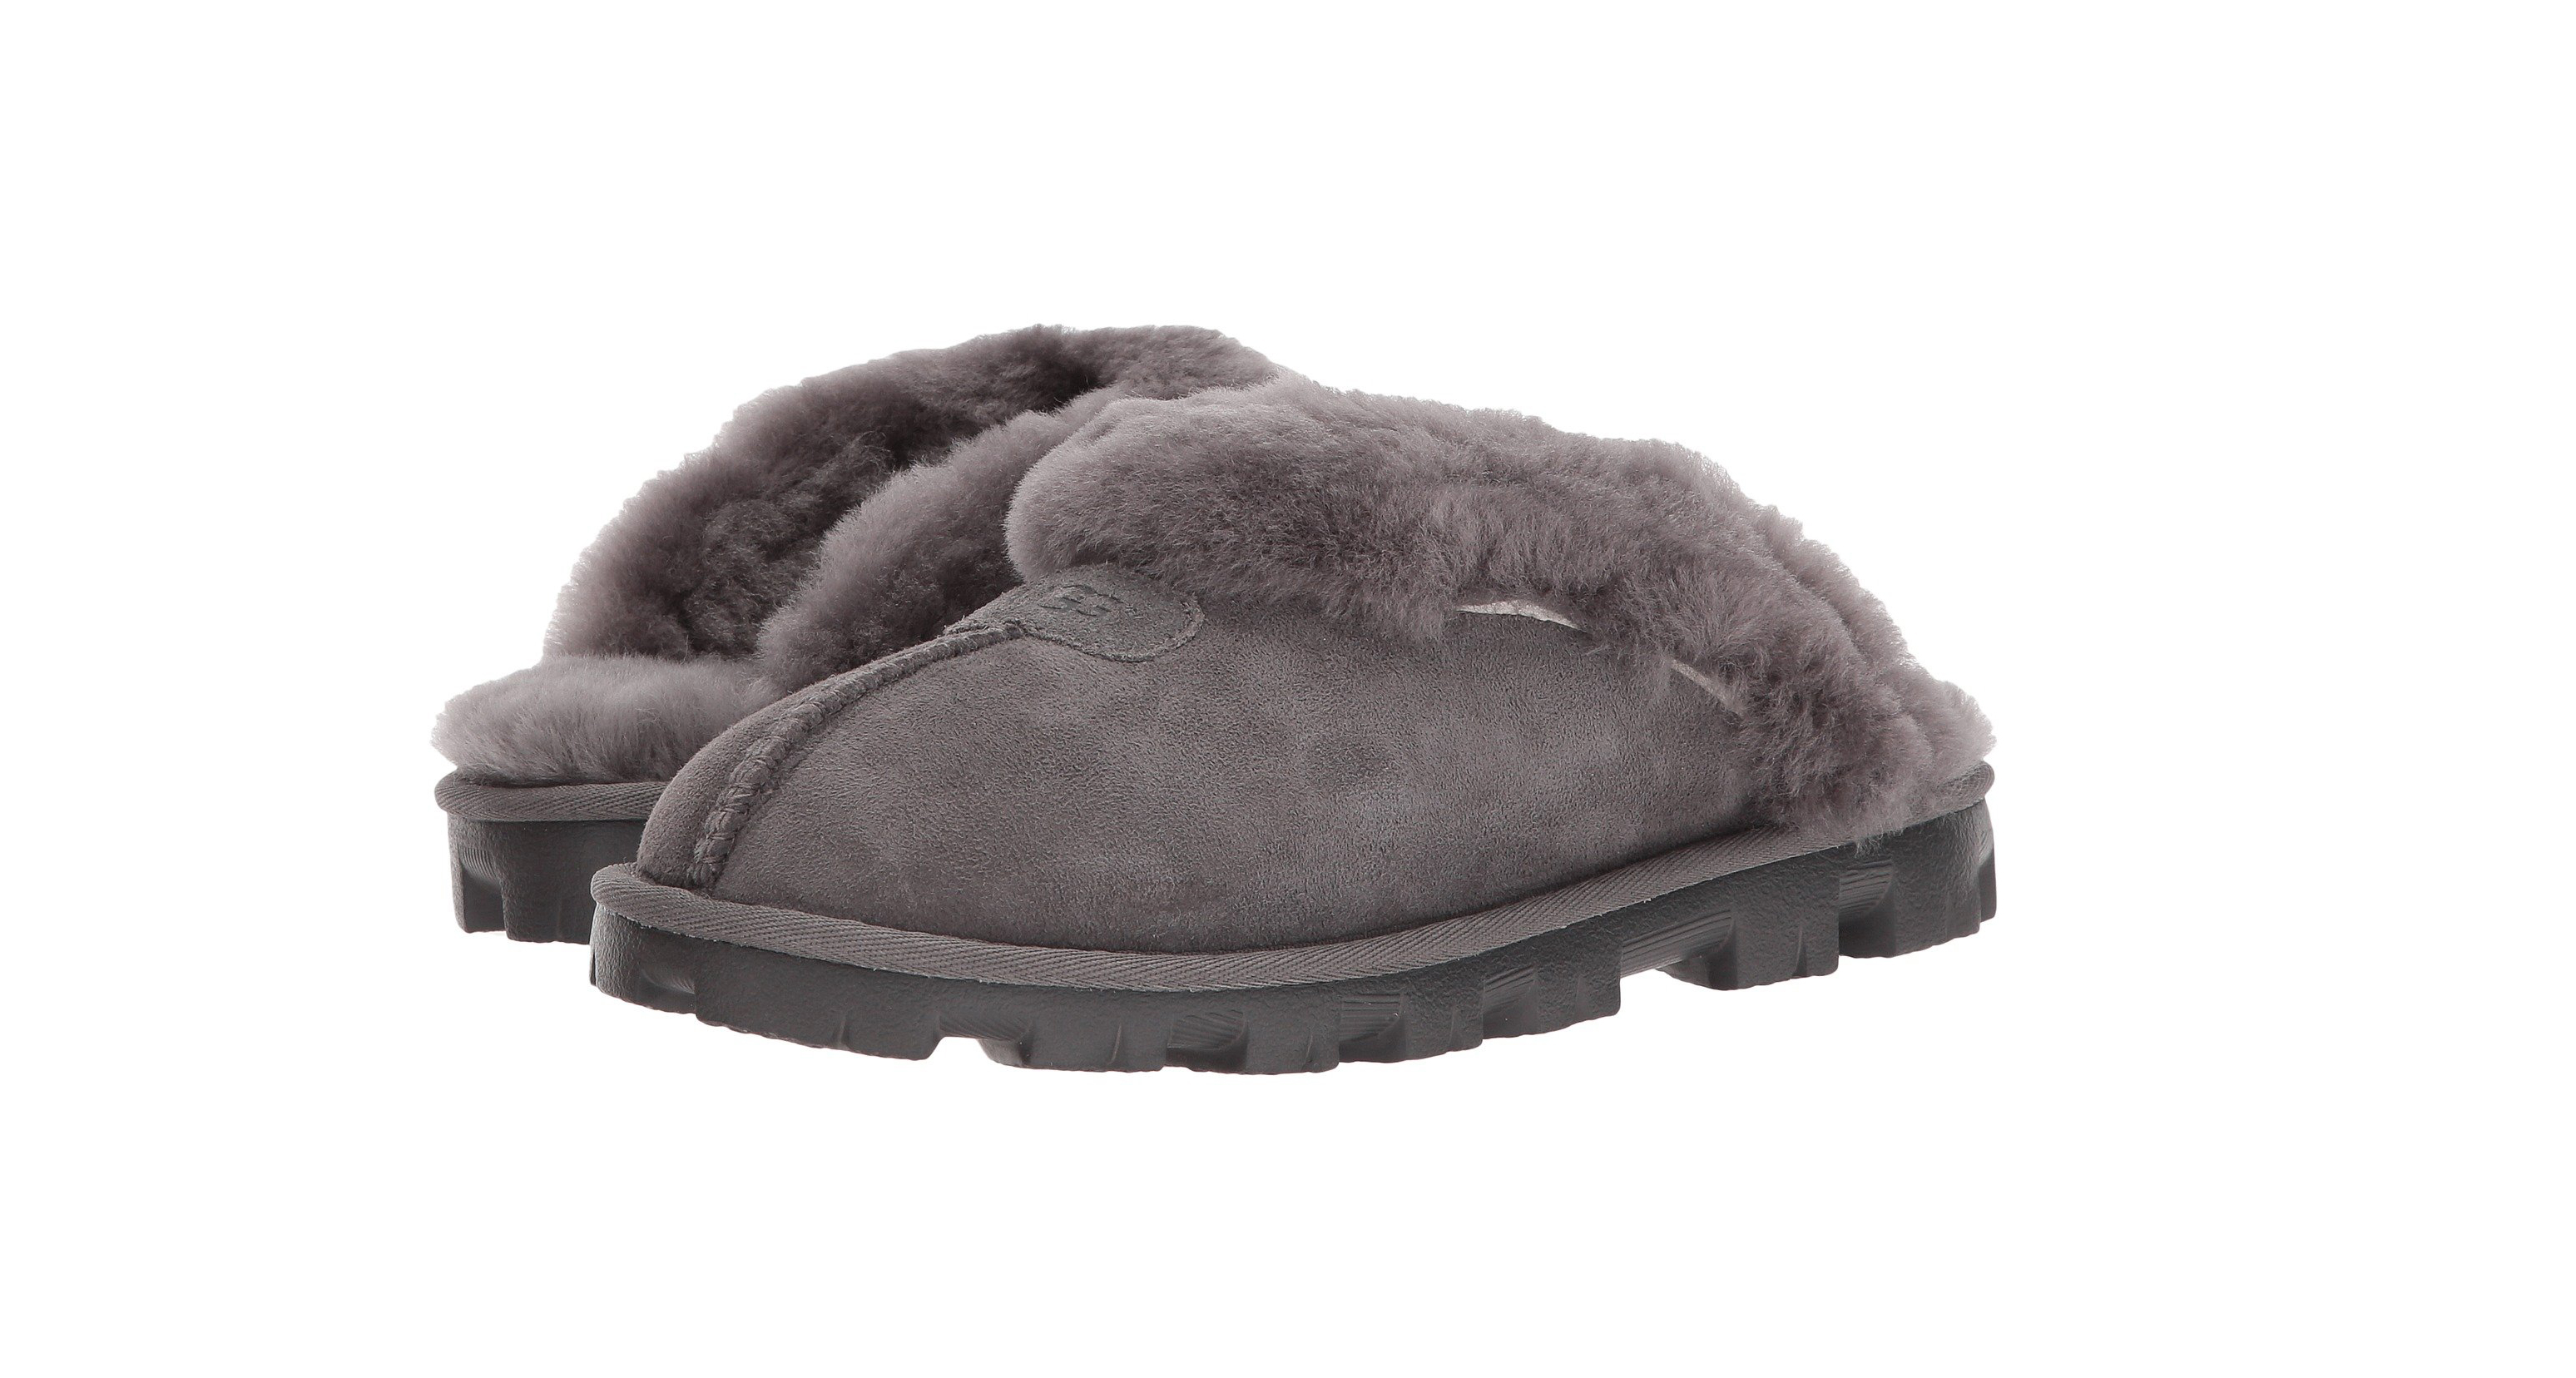 Ugg's Best-Selling Slippers Are on a